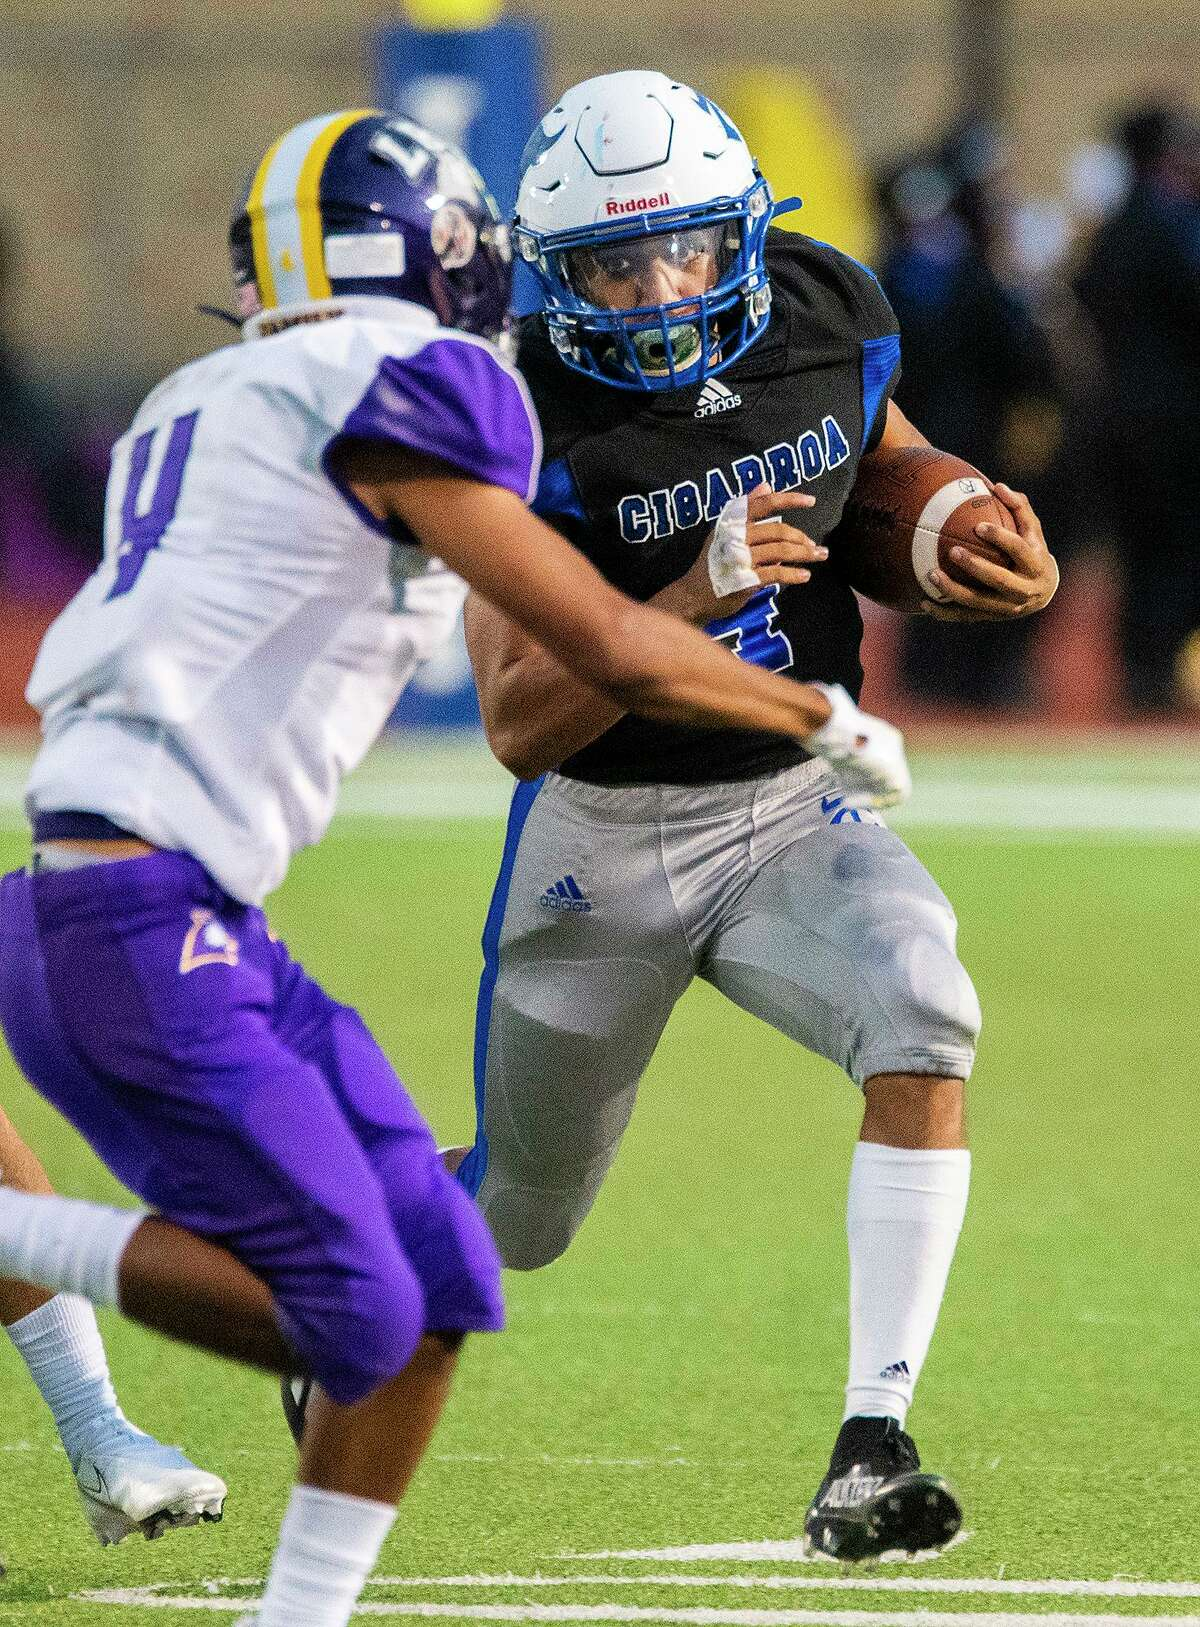 Ya-aqob Lozano rushed for 256 yards and four touchdowns Friday in Cigarroa's 40-14 win over LBJ at Shirley Field.